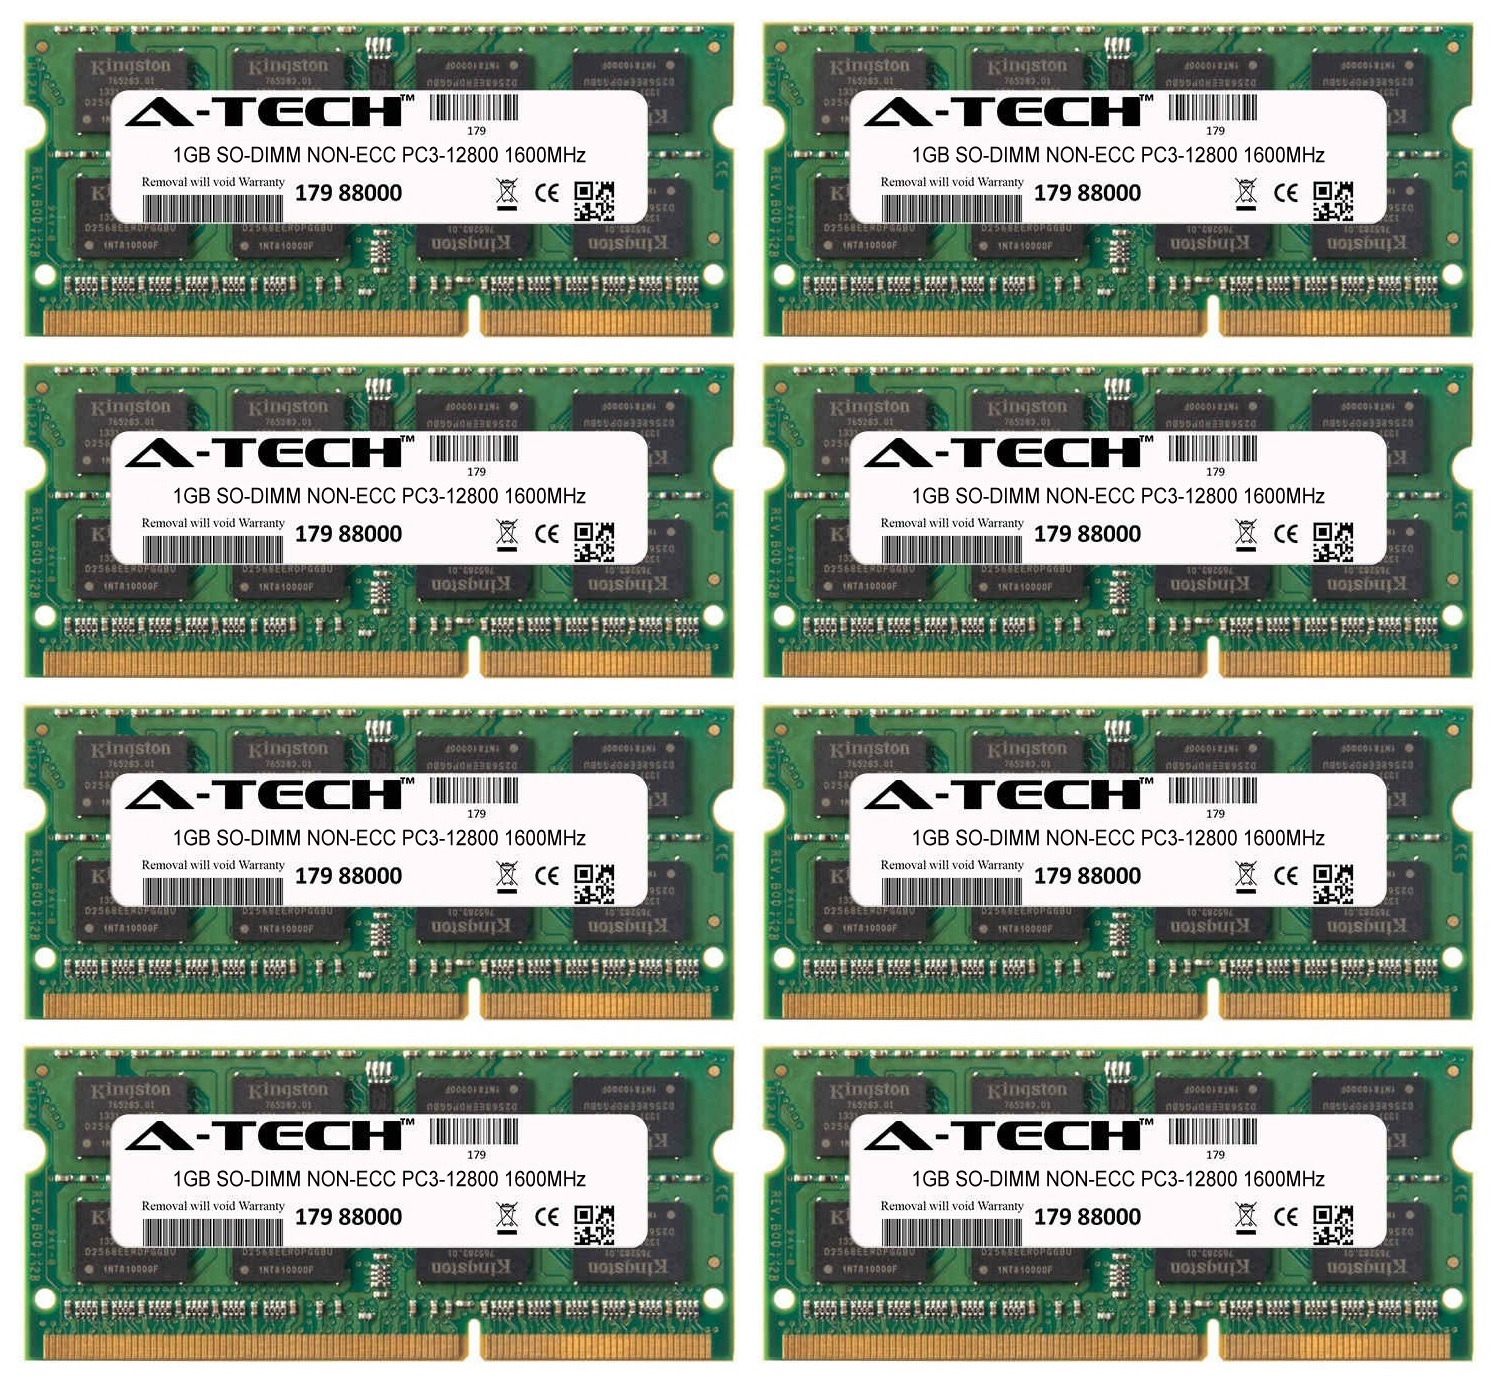 8GB Kit 8x 1GB Modules PC3-12800 1600MHz NON-ECC DDR3 SO-DIMM Laptop 204-pin Memory Ram